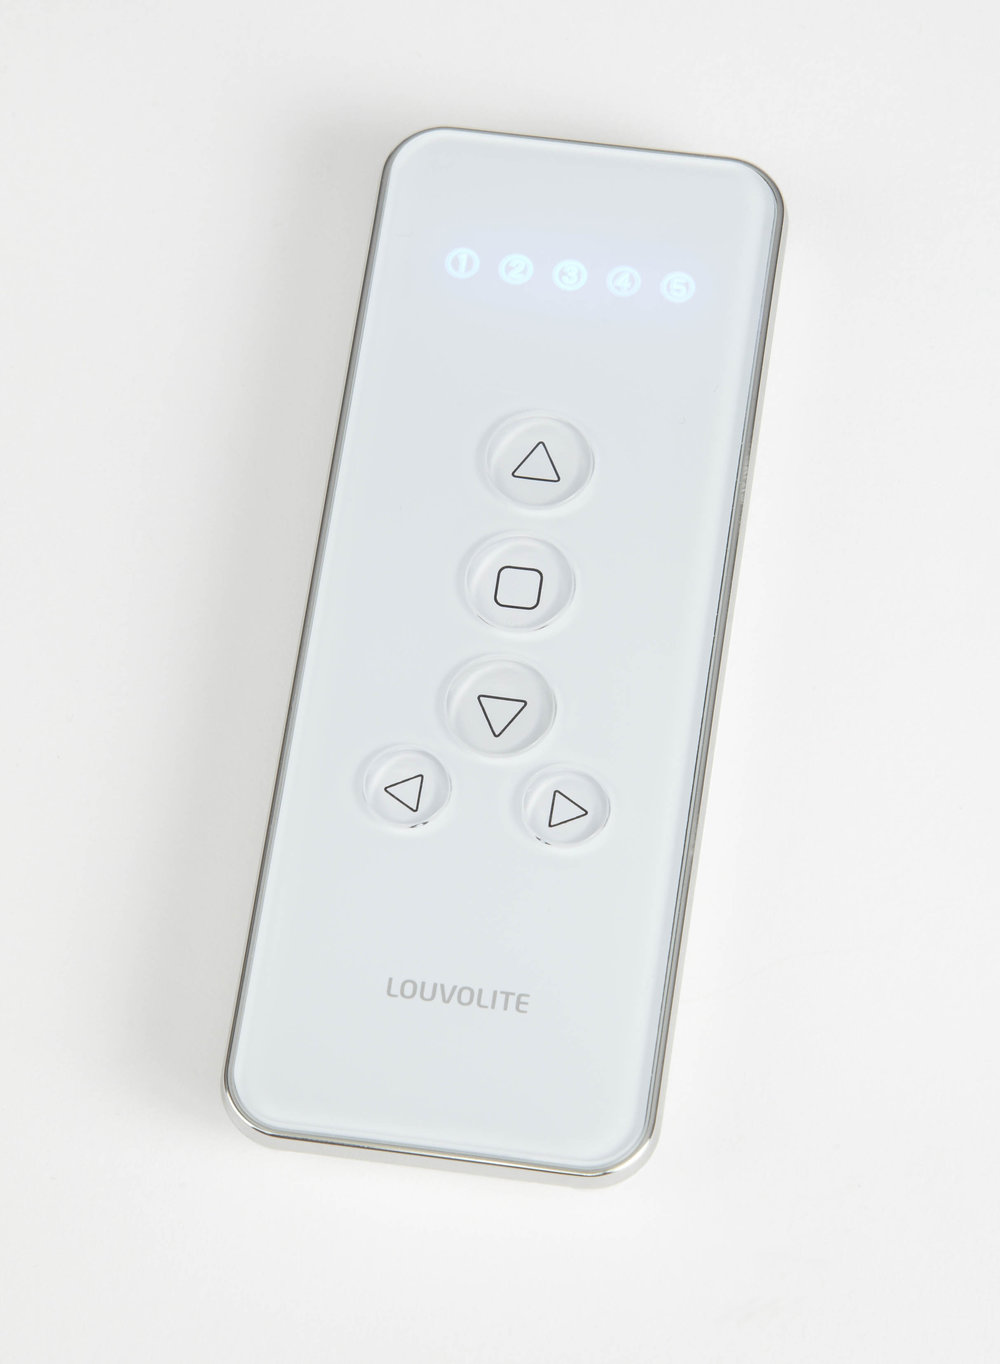 LITHIUM_REMOTE_PRODUCT.jpg